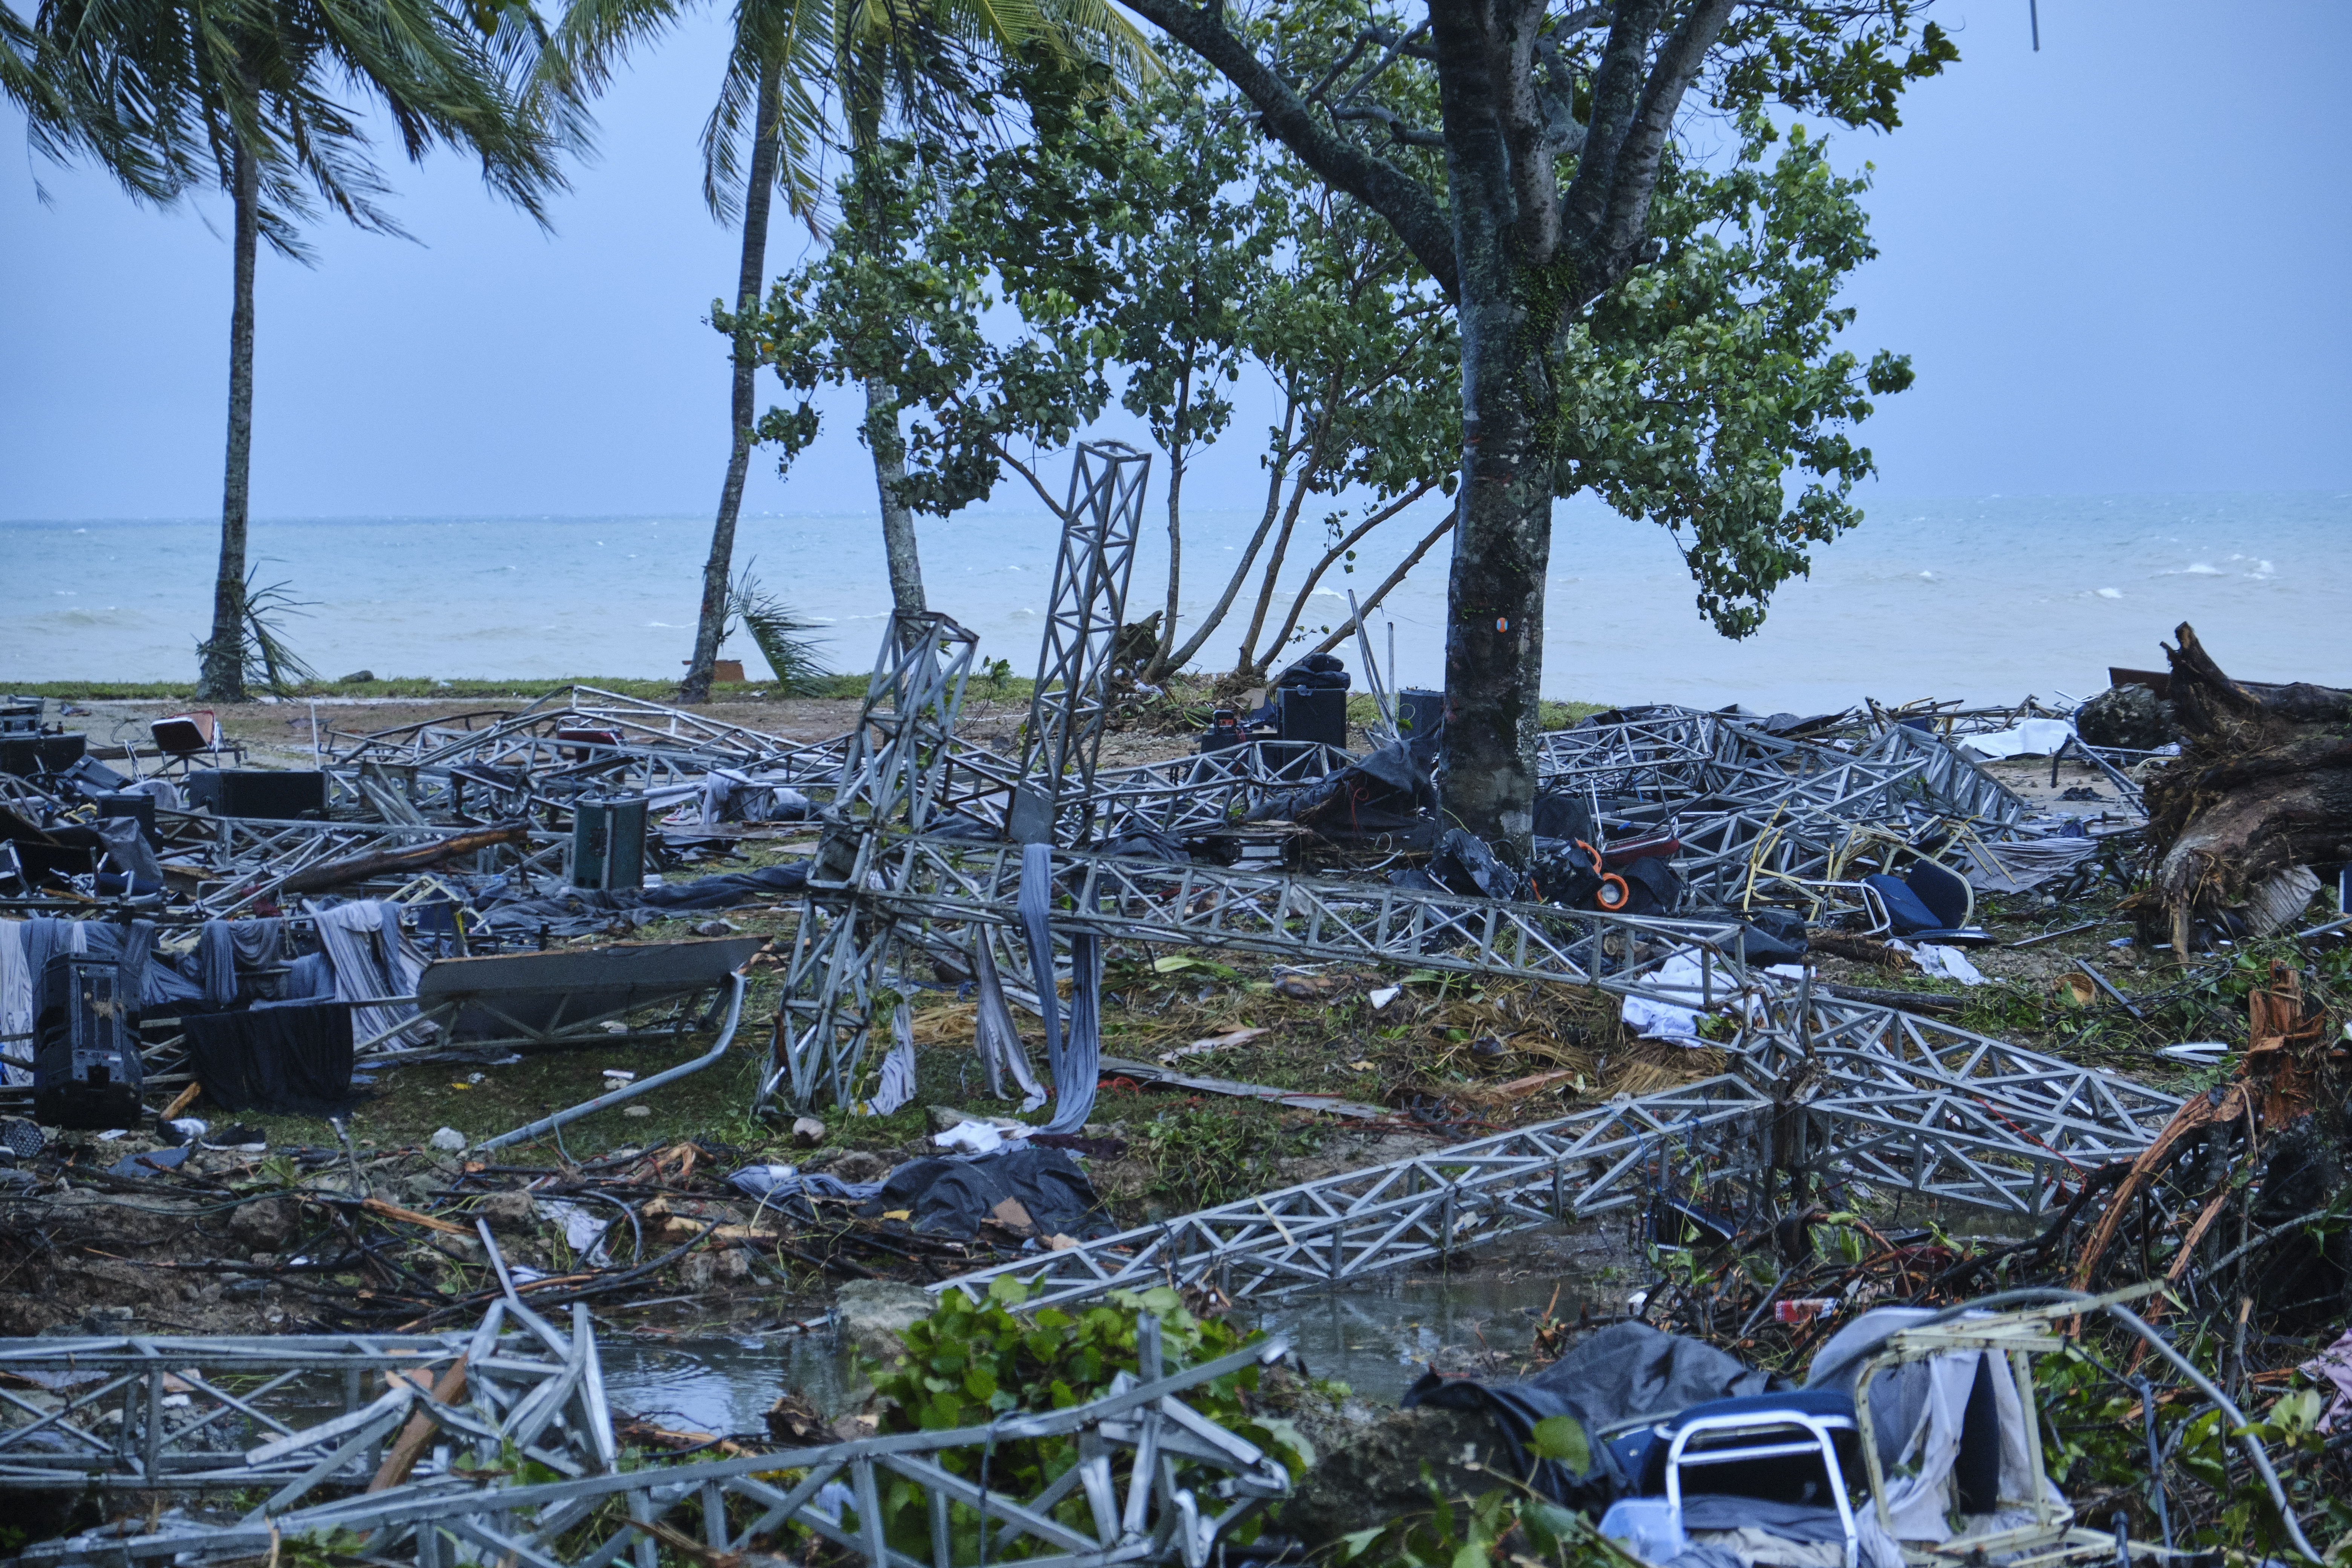 Twisted steel girders are all that's left of a music stage after a tsunami at a resort hotel on December 23, 2018, in Tanjung Lesung, Indonesia. Over 220 people have reportedly been killed after a volcano-triggered tsunami hit the coast around Indonesia's Sunda Strait on Saturday night, injuring over 600 people. (Getty Images)